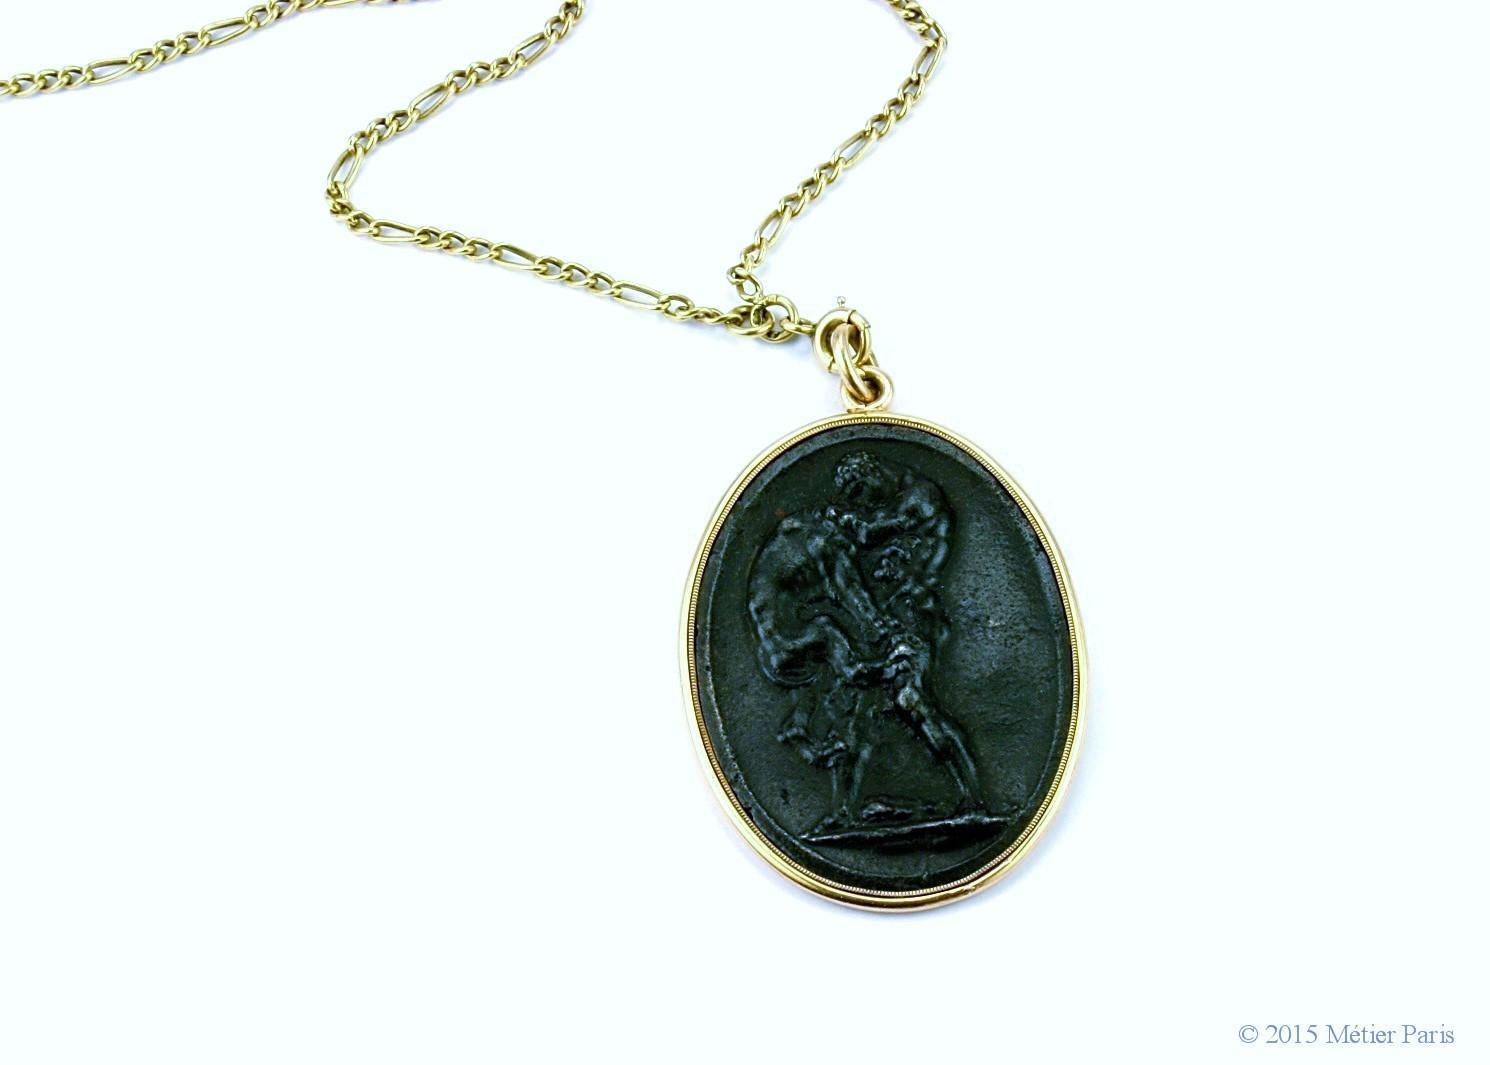 Berlin Iron Cameo Medallion / Pendant of Hercules, after Wedgwood, c. 1800 - 1815